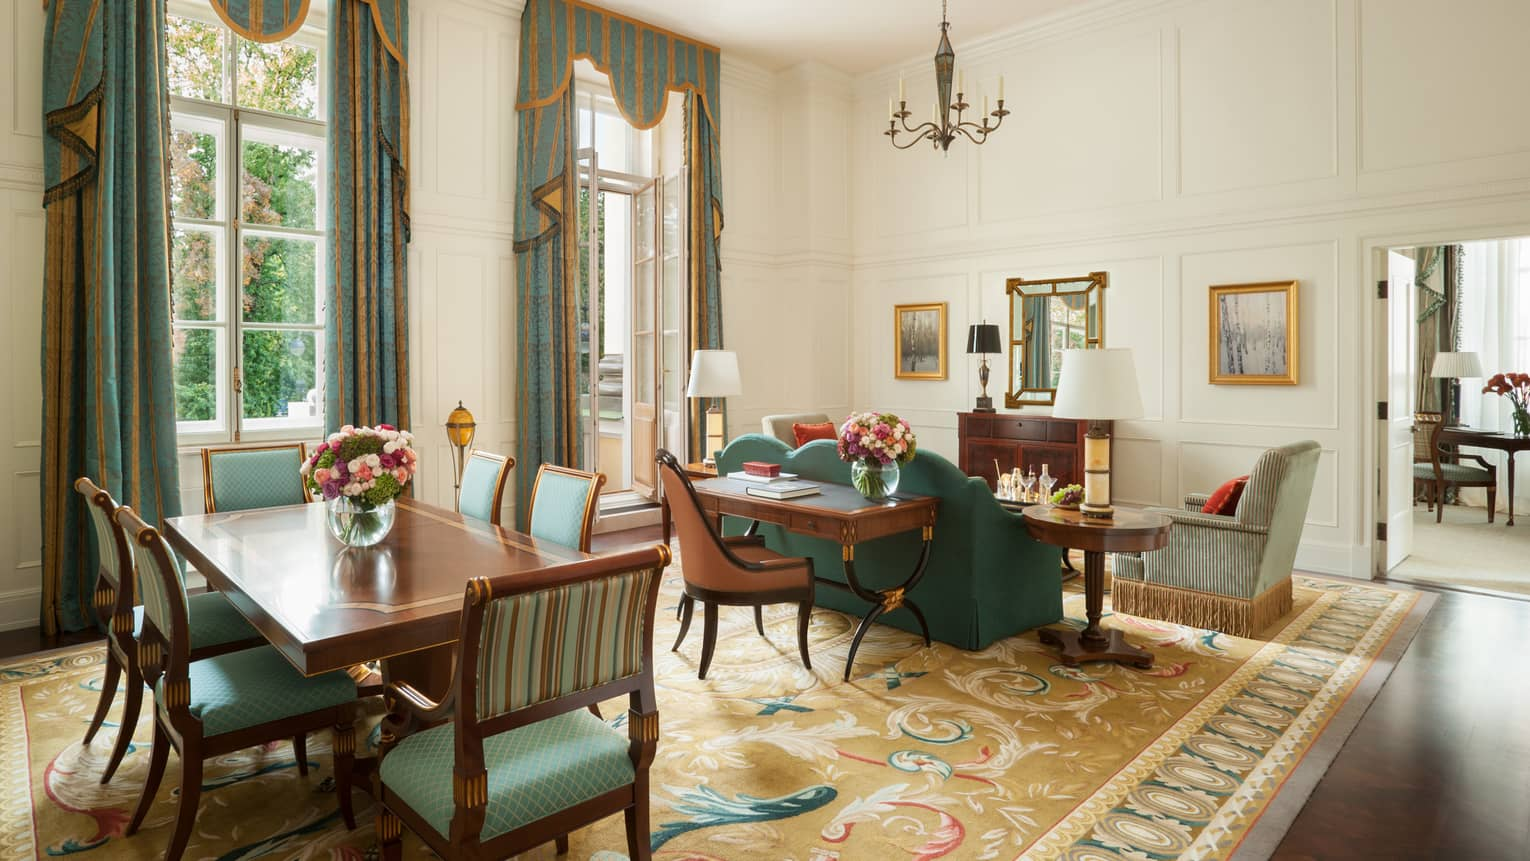 Admiralty One-Bedroom Suite large dining table and chairs by sitting area, teal green and gold decor